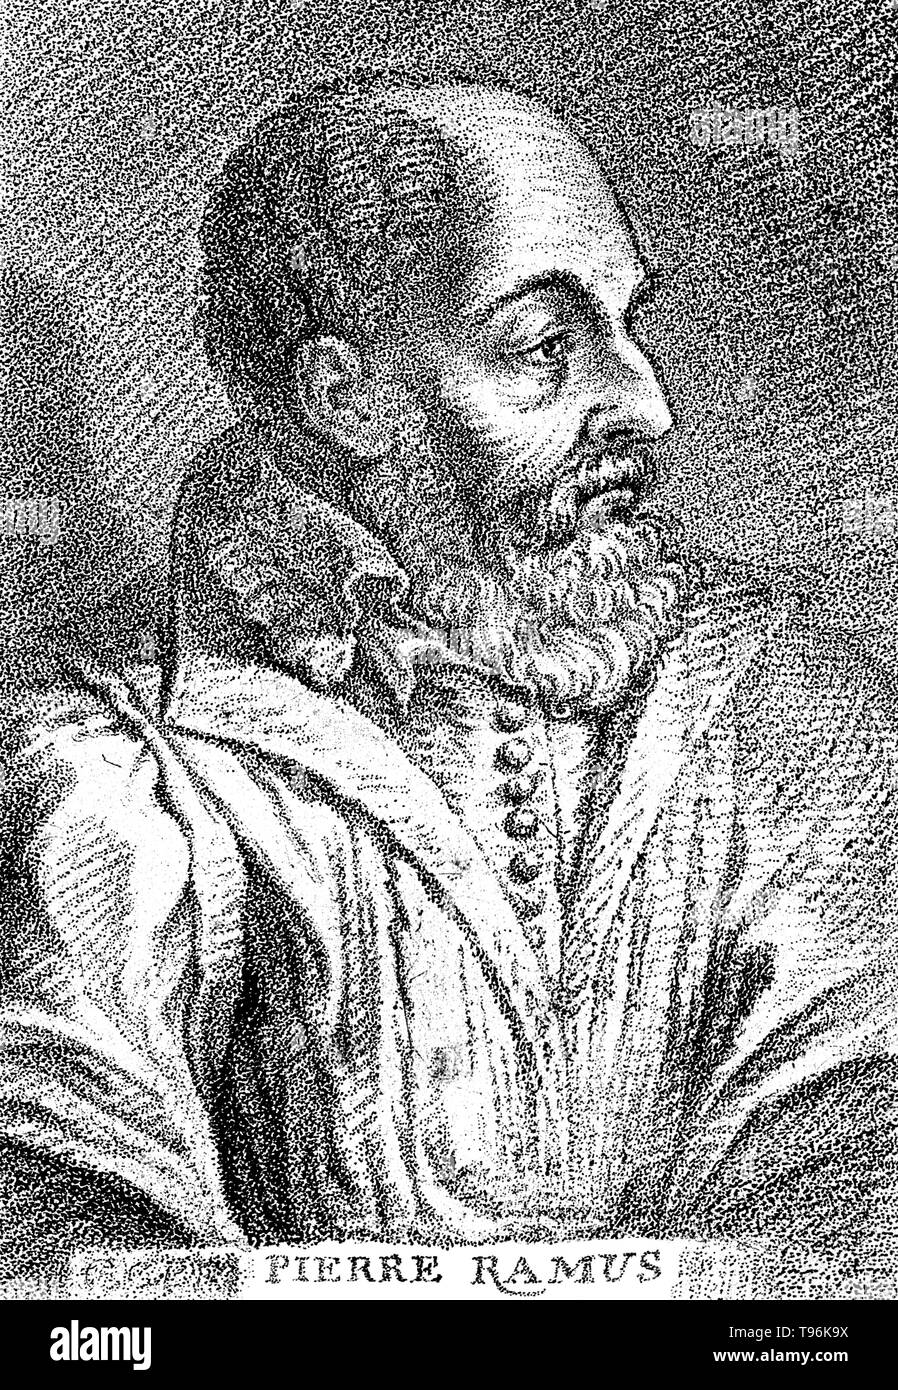 Petrus Ramus (1515 - August 26, 1572) was an influential French humanist, logician, and educational reformer. He gained admission at age twelve, to the Collège de Navarre, working as a servant. A reaction against scholasticism was in full tide, at a transitional time for Aristotelianism. A central issue to his anti-Aristotelianism arose out of a concern for pedagogy. He sought to infuse order and simplicity into philosophical and scholastic education by reinvigorating a sense of dialectic as the overriding logical and methodological basis for the various disciplines. The logic of Ramus enjoyed - Stock Image